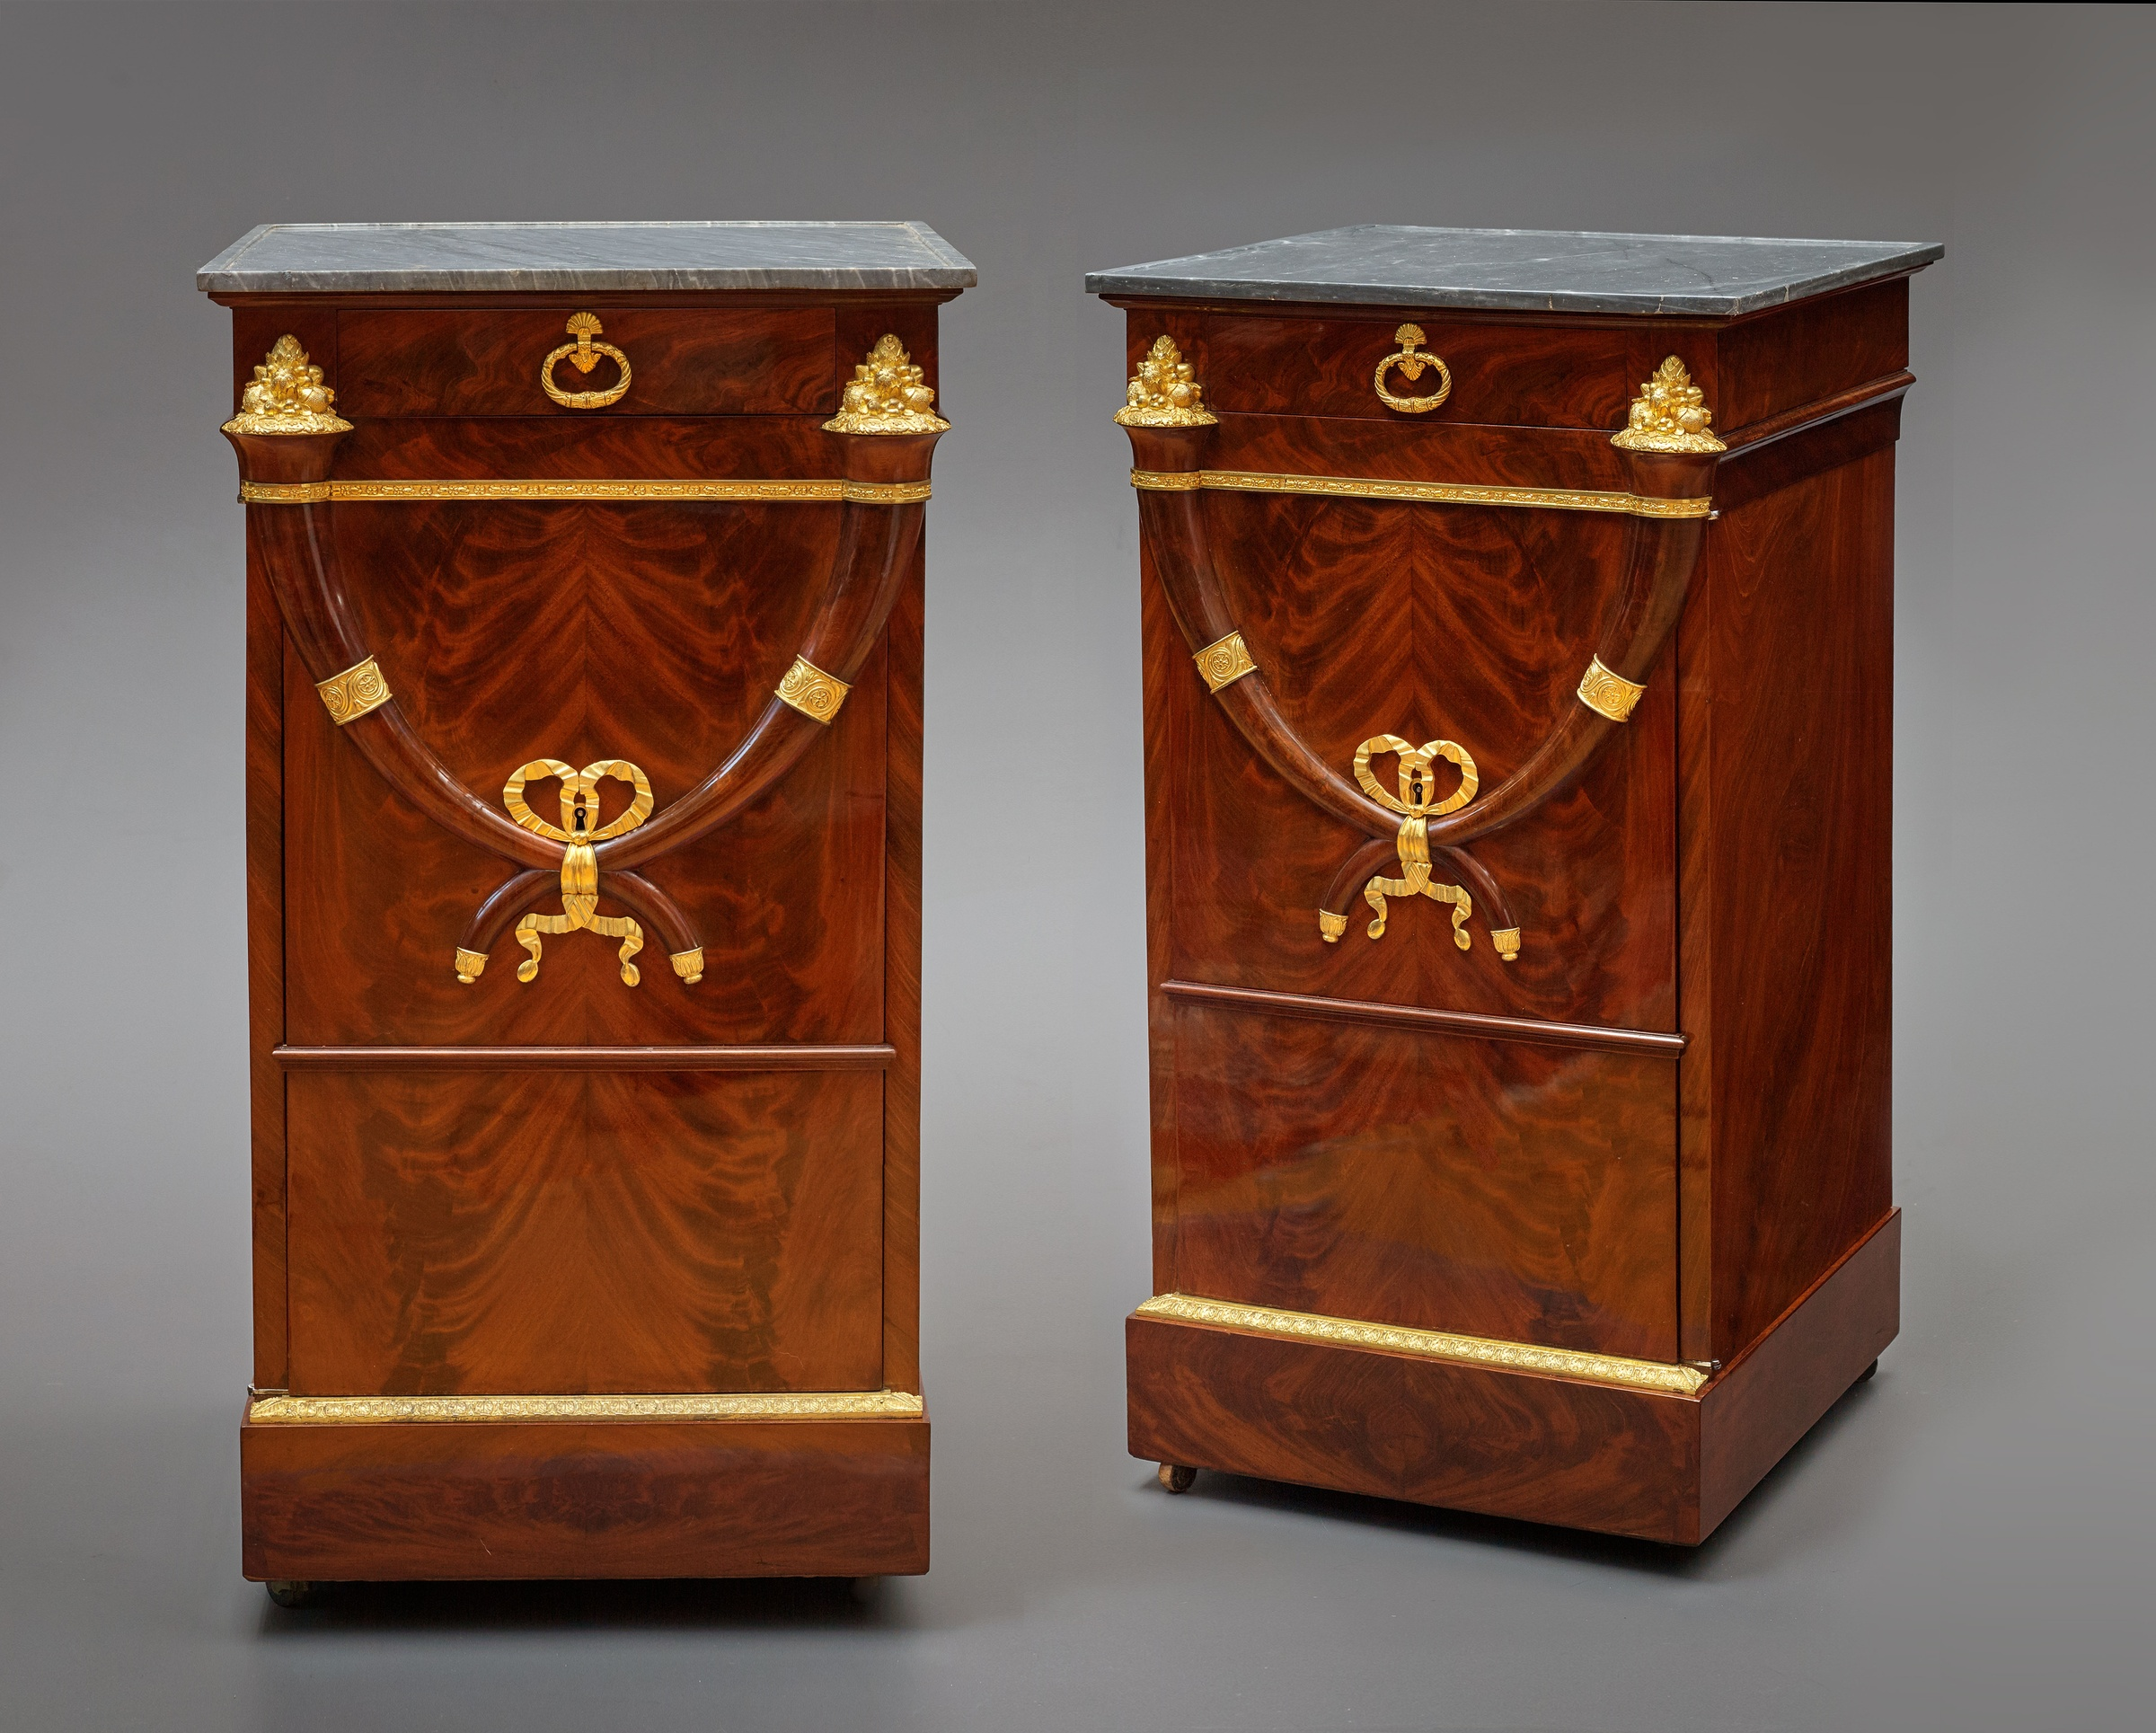 Jacob Fr¨res attributed to A pair of Directoire somnos attributed